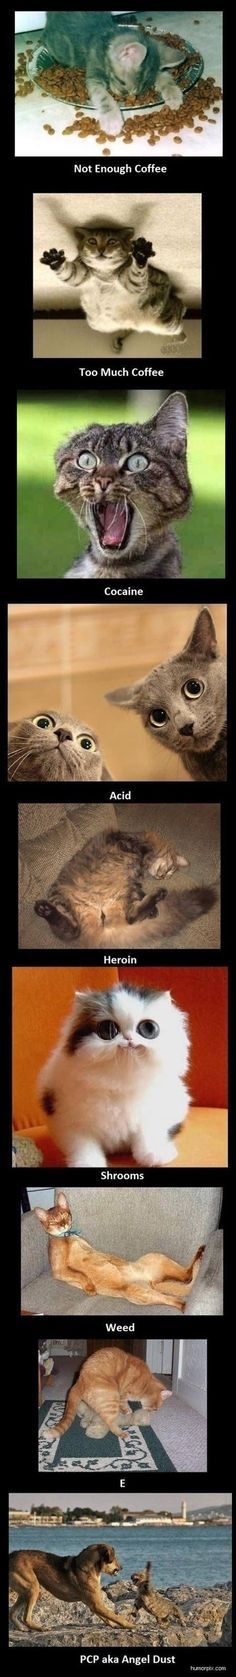 Cats on drugs.